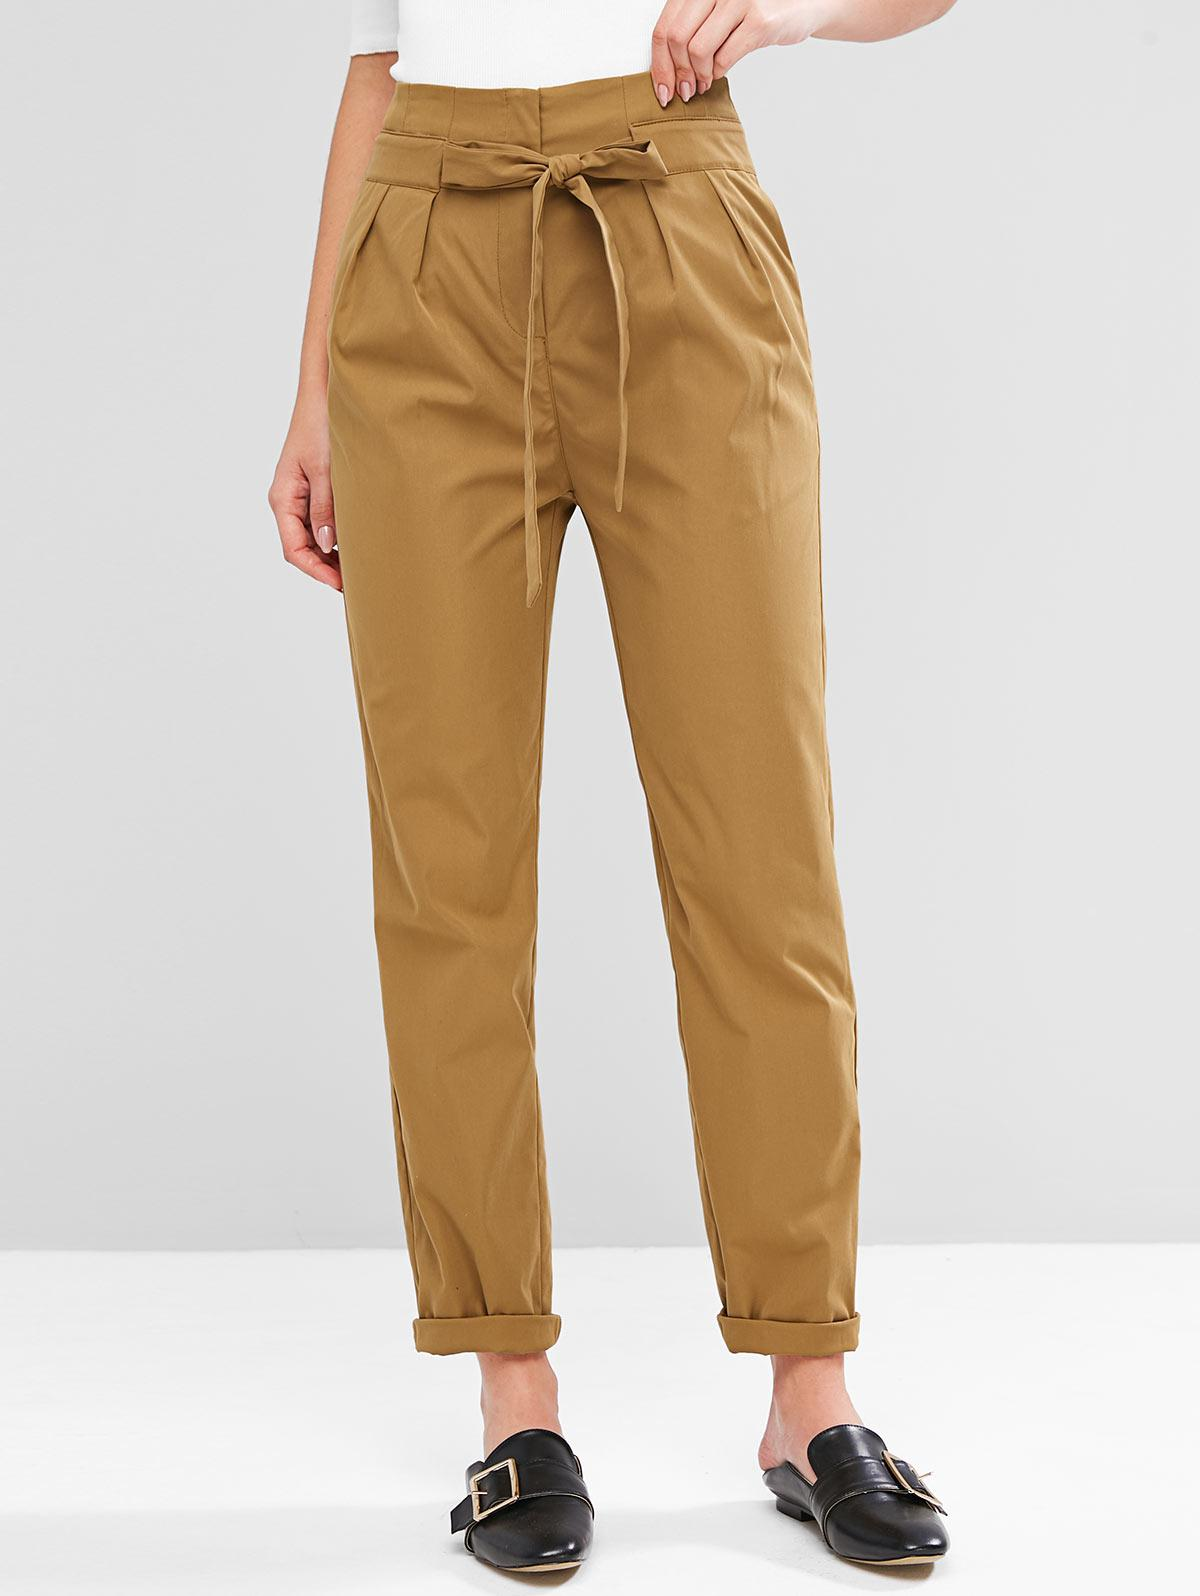 ZAFUL Knotted High Waist Solid Pants